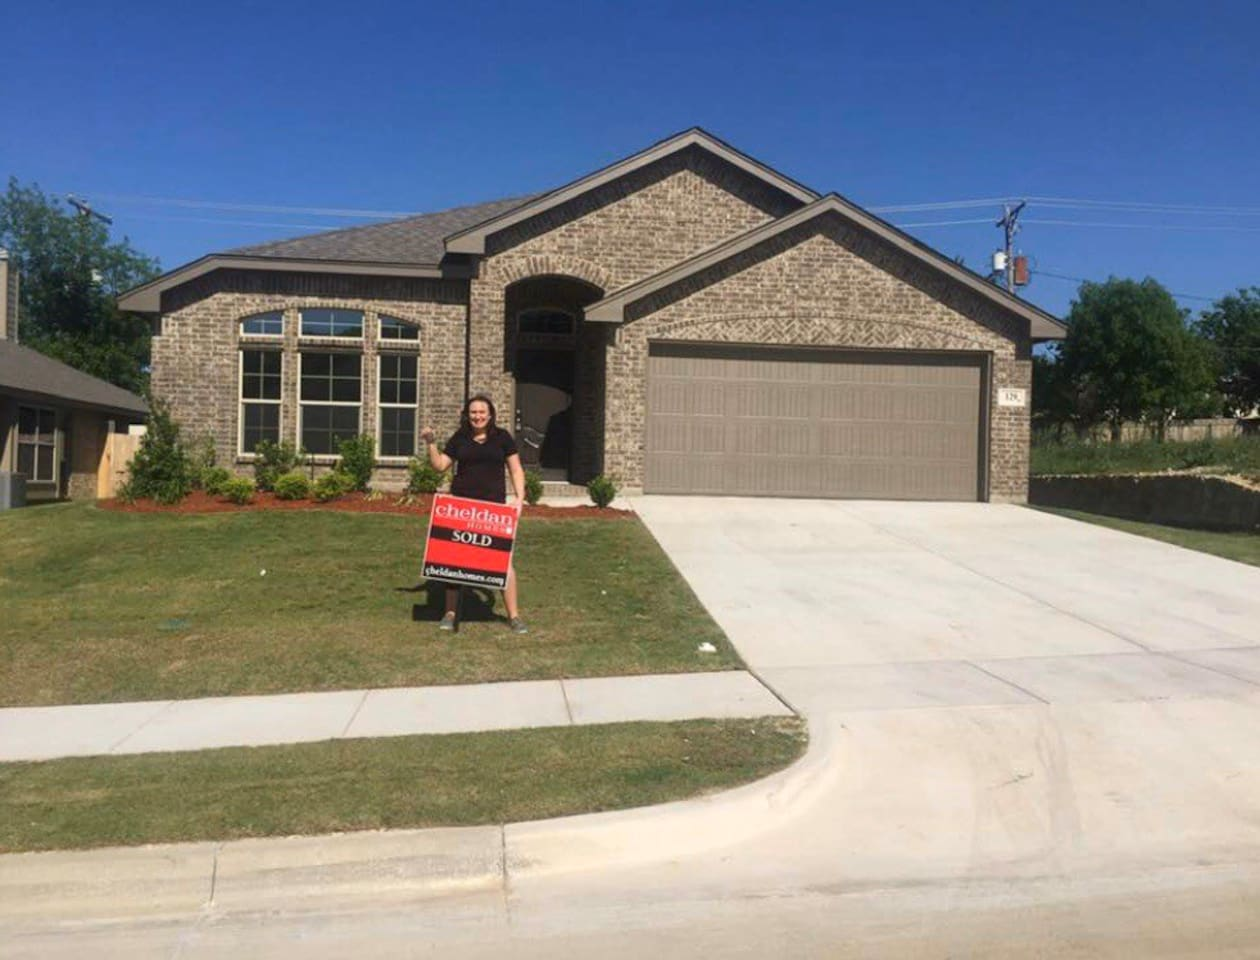 The Day I Purchased My Home